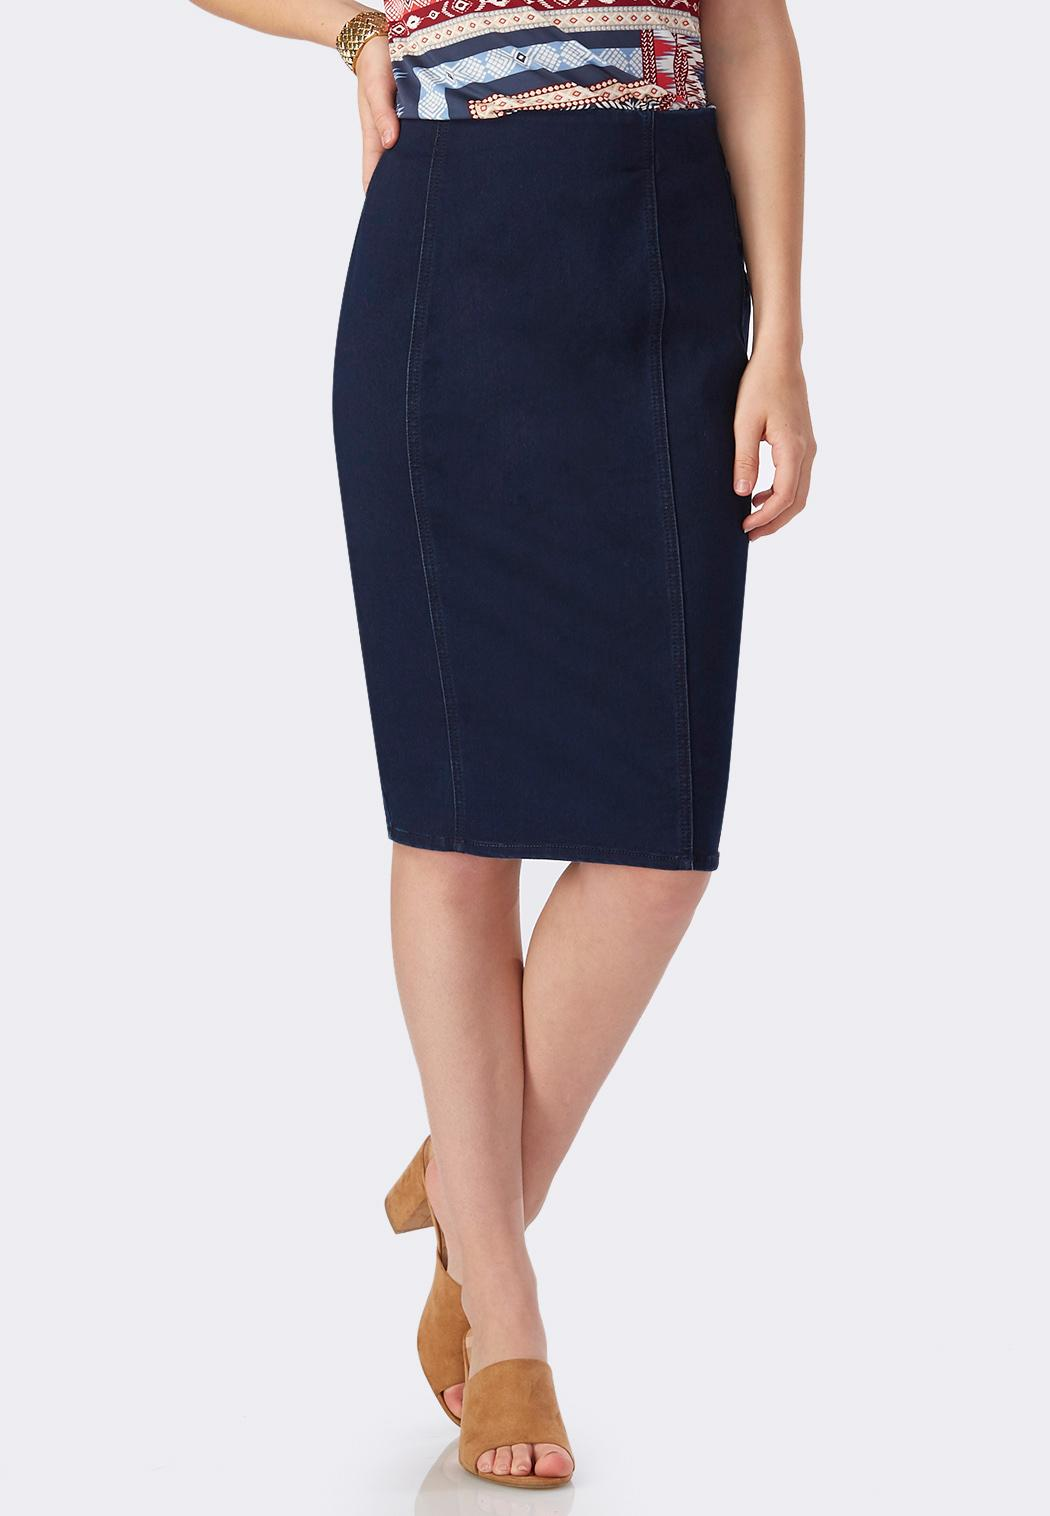 Find great deals on eBay for jean pencil skirt. Shop with confidence.